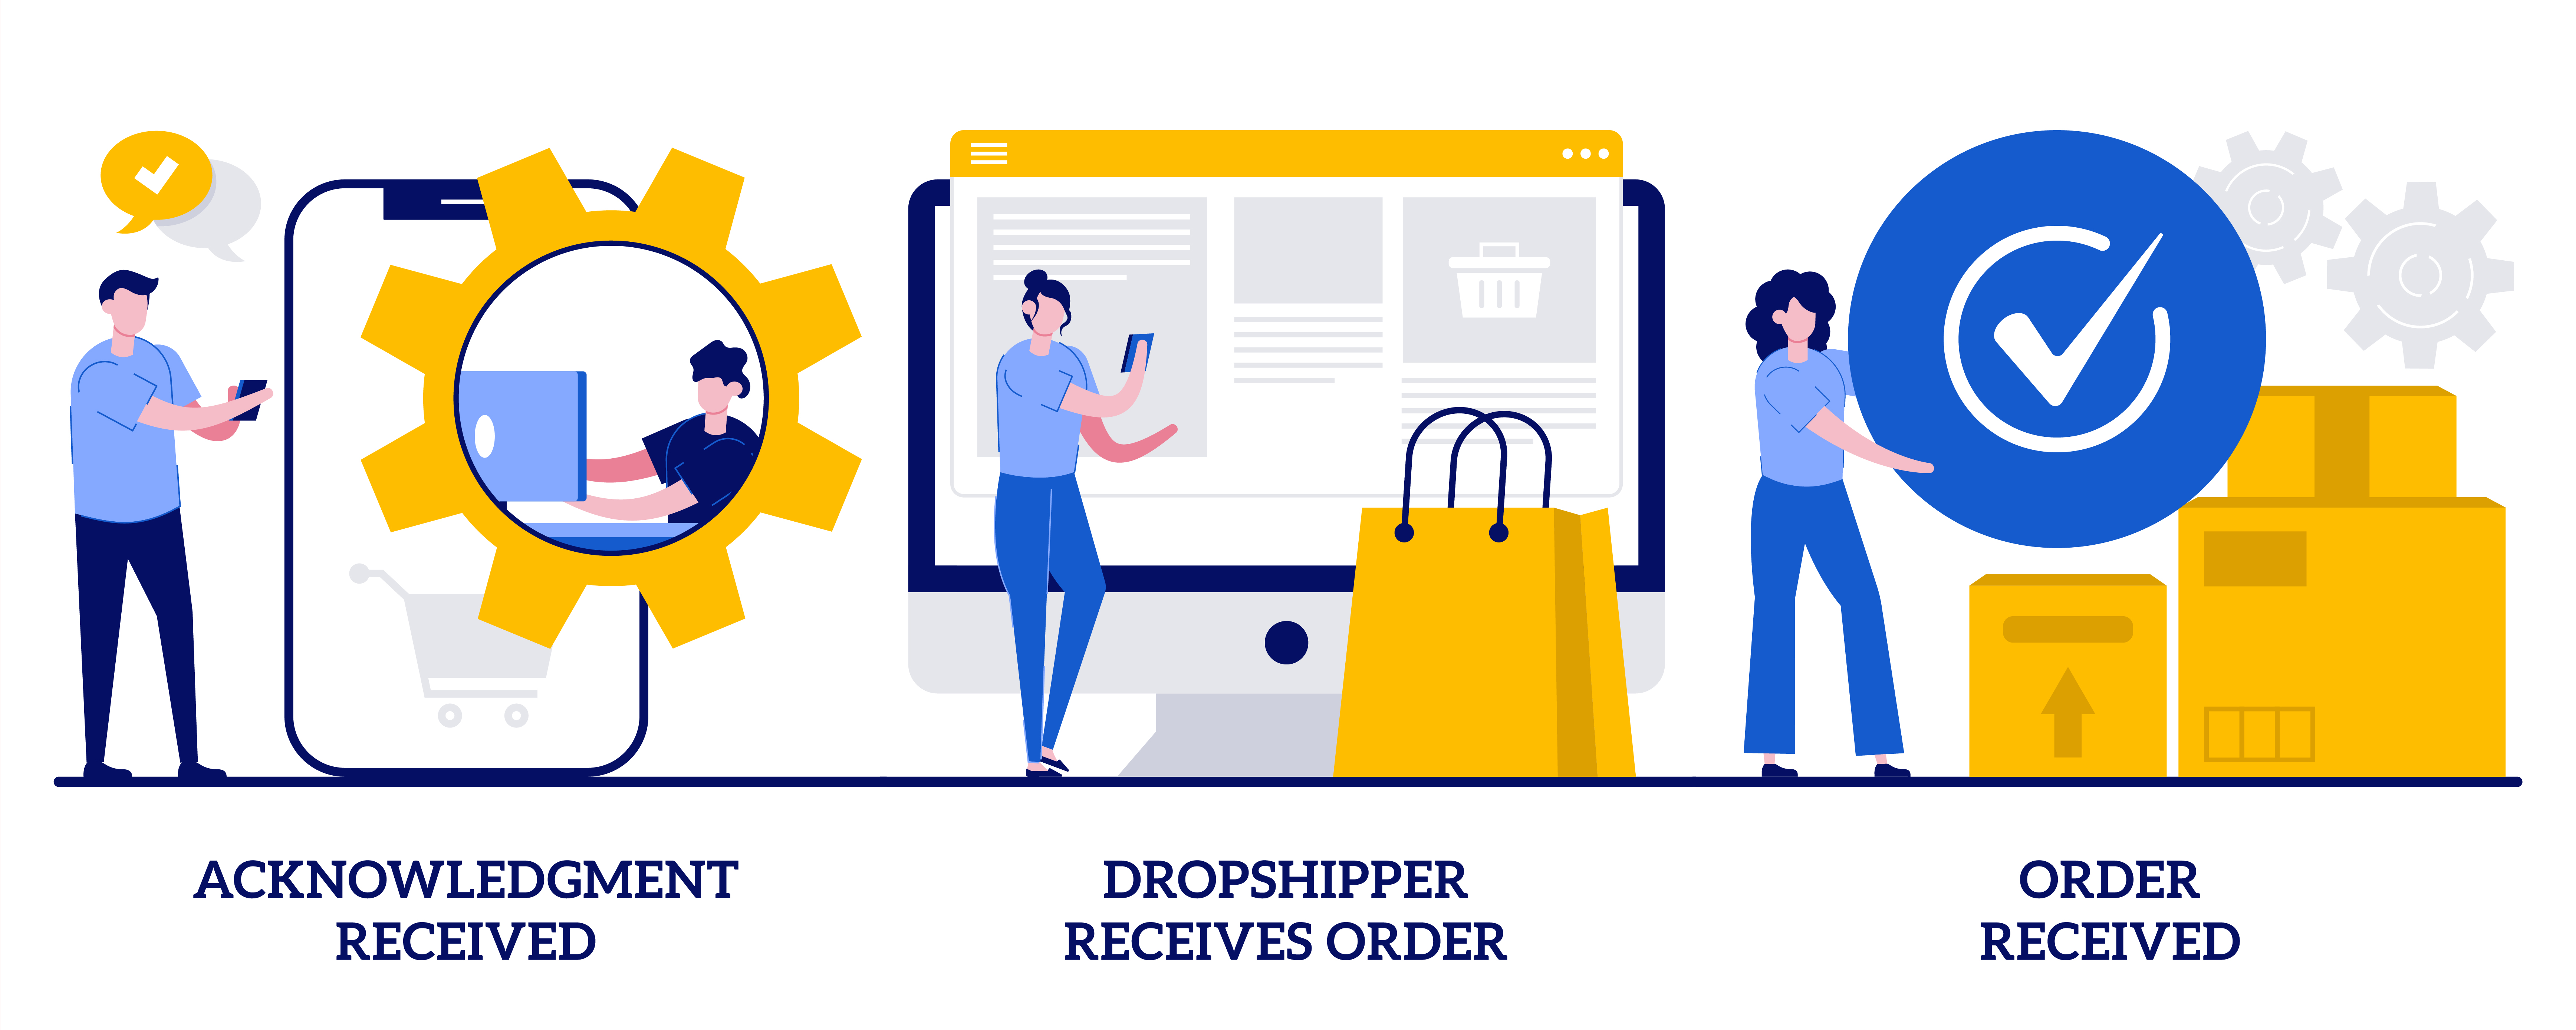 How To Win The Dropshipping Game In 2021